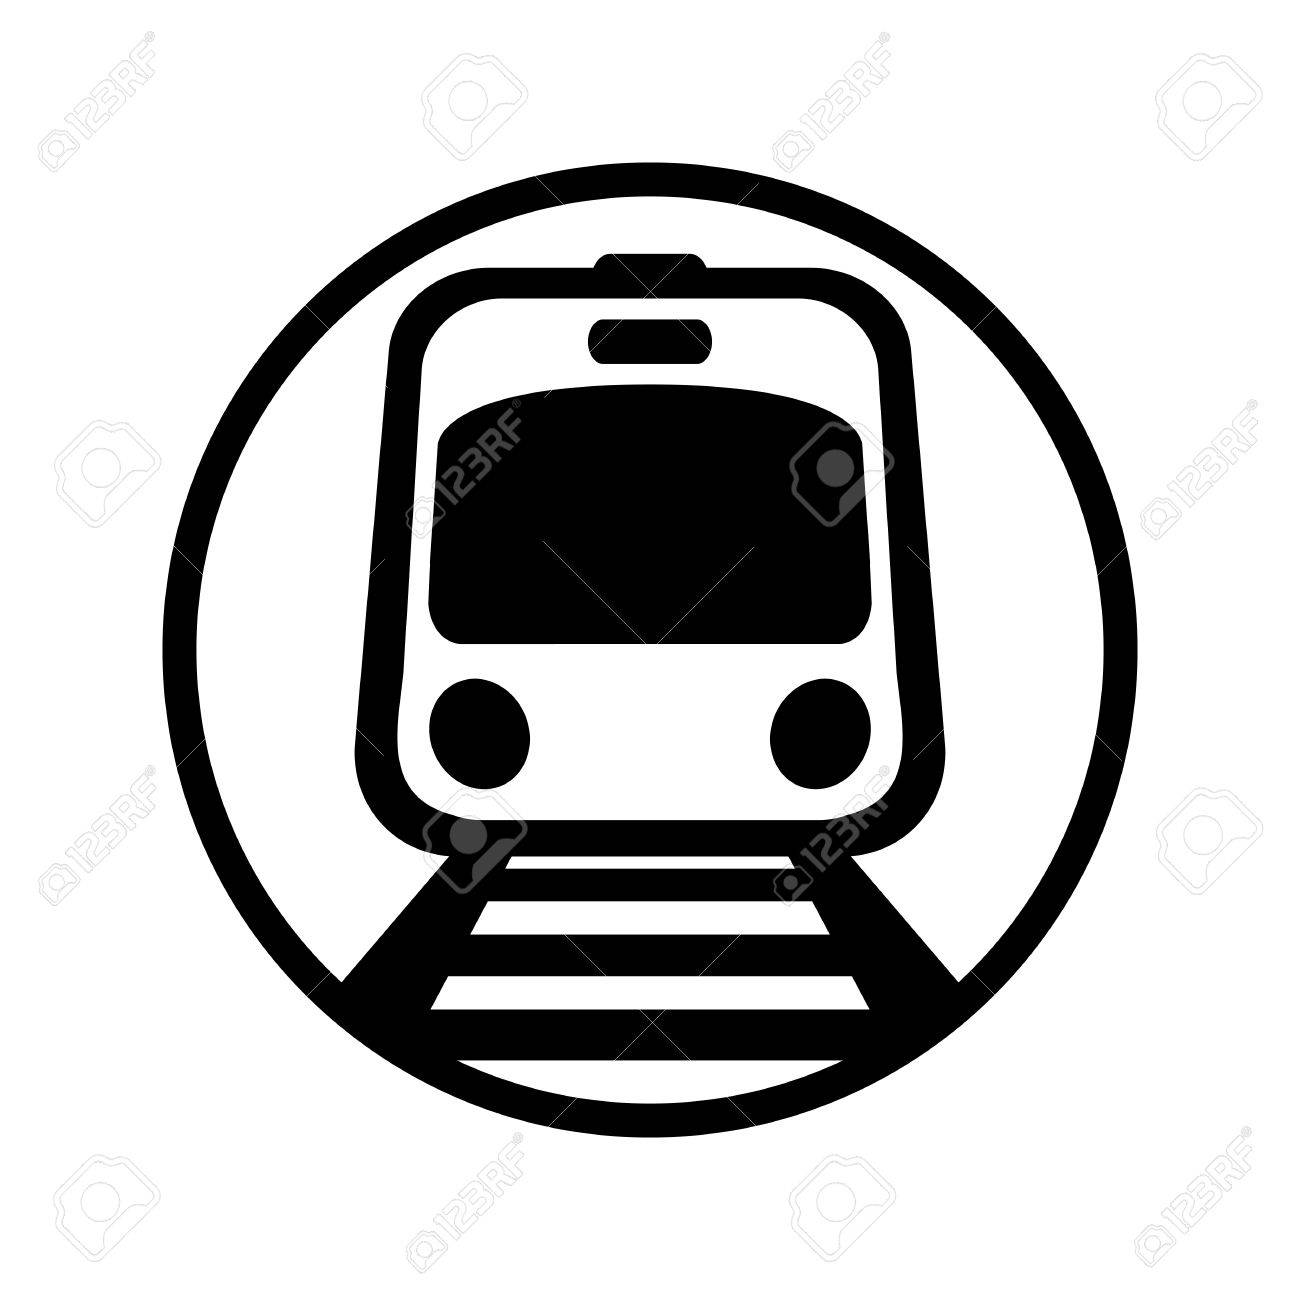 vector transparent stock Subway clipart. Train free download best.